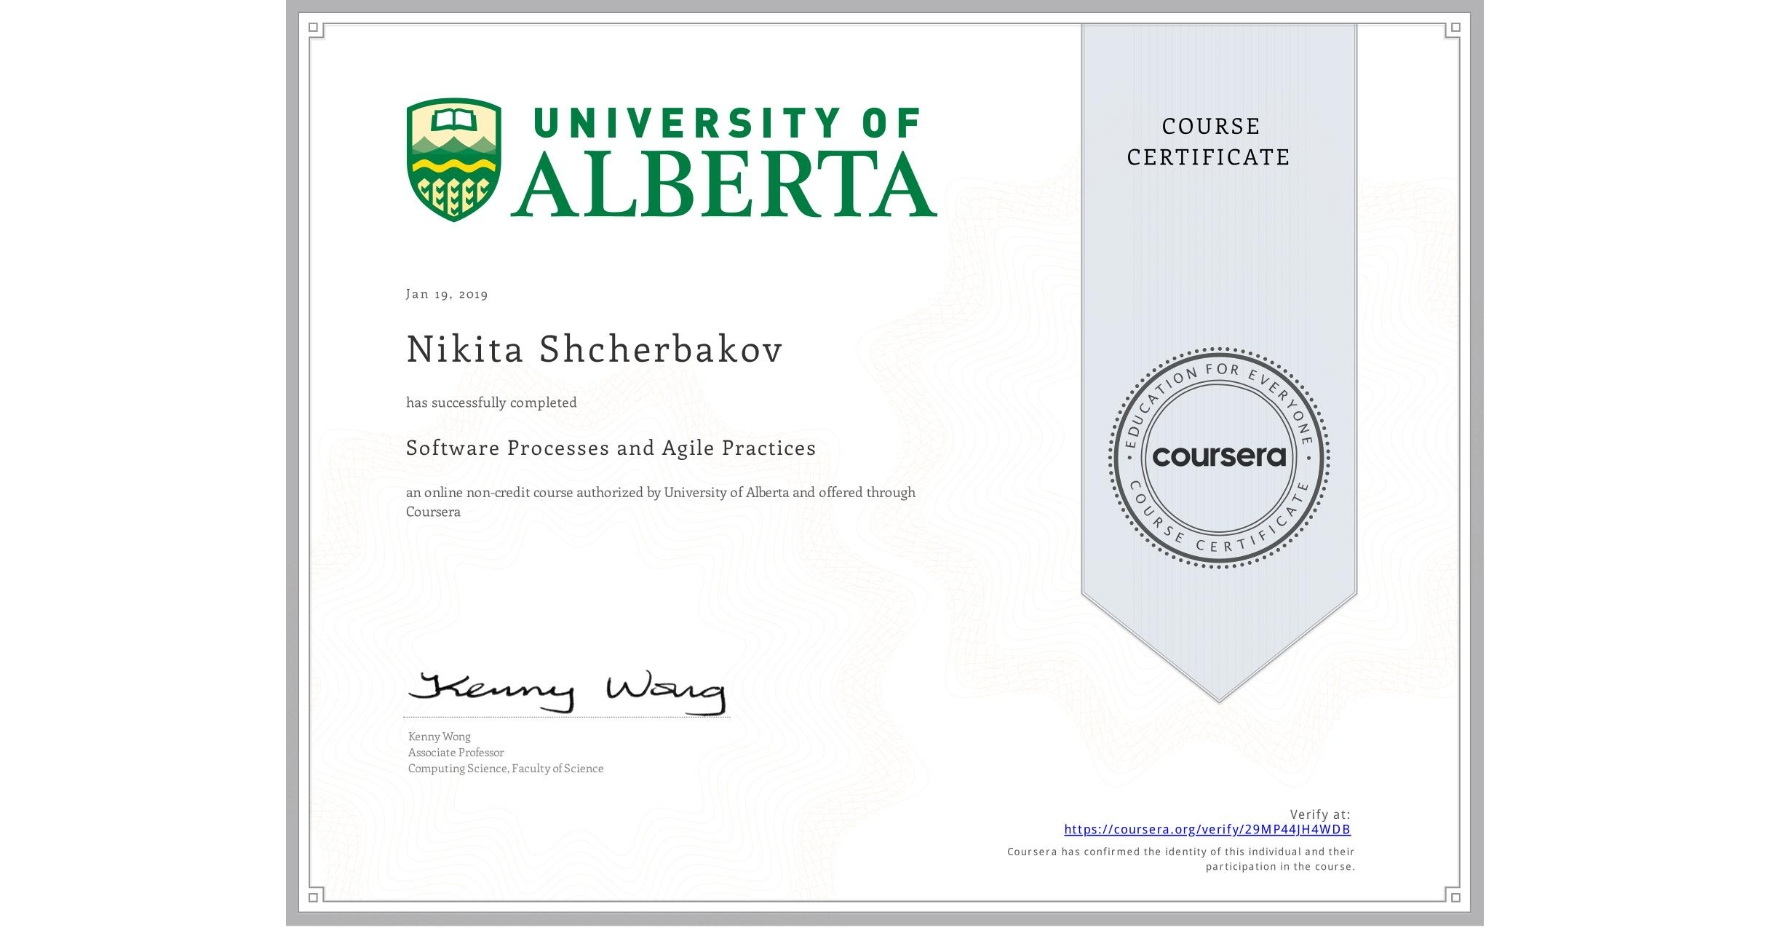 View certificate for Nikita Shcherbakov, Software Processes and Agile Practices, an online non-credit course authorized by University of Alberta and offered through Coursera